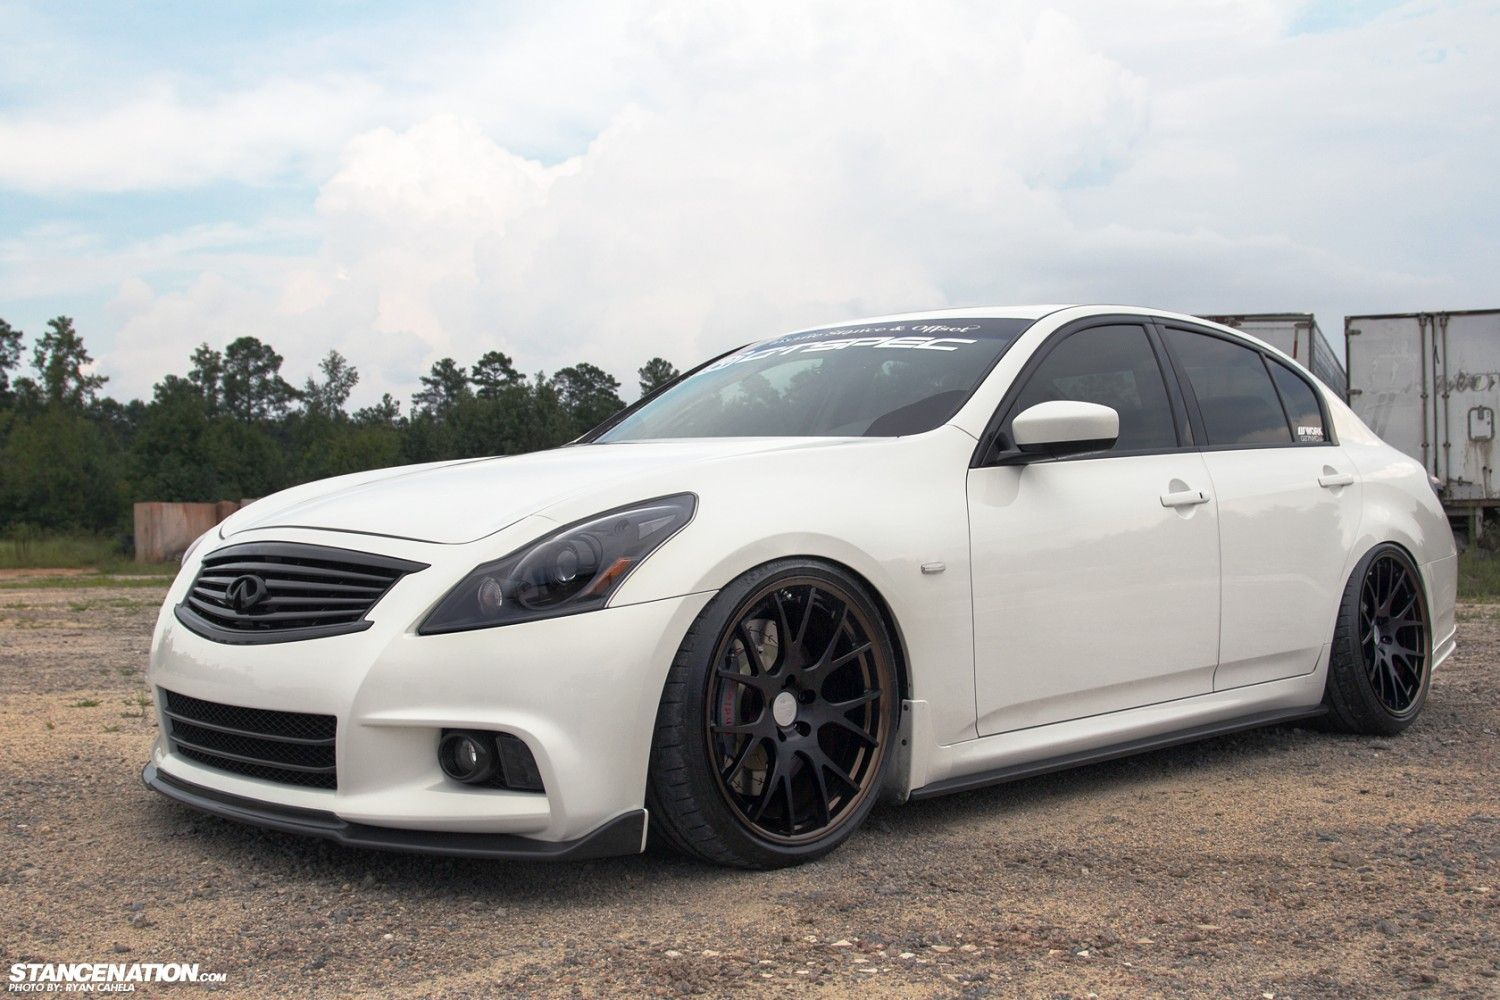 Meet Layla // Christopher's 600+HP Infiniti G37 Sedan